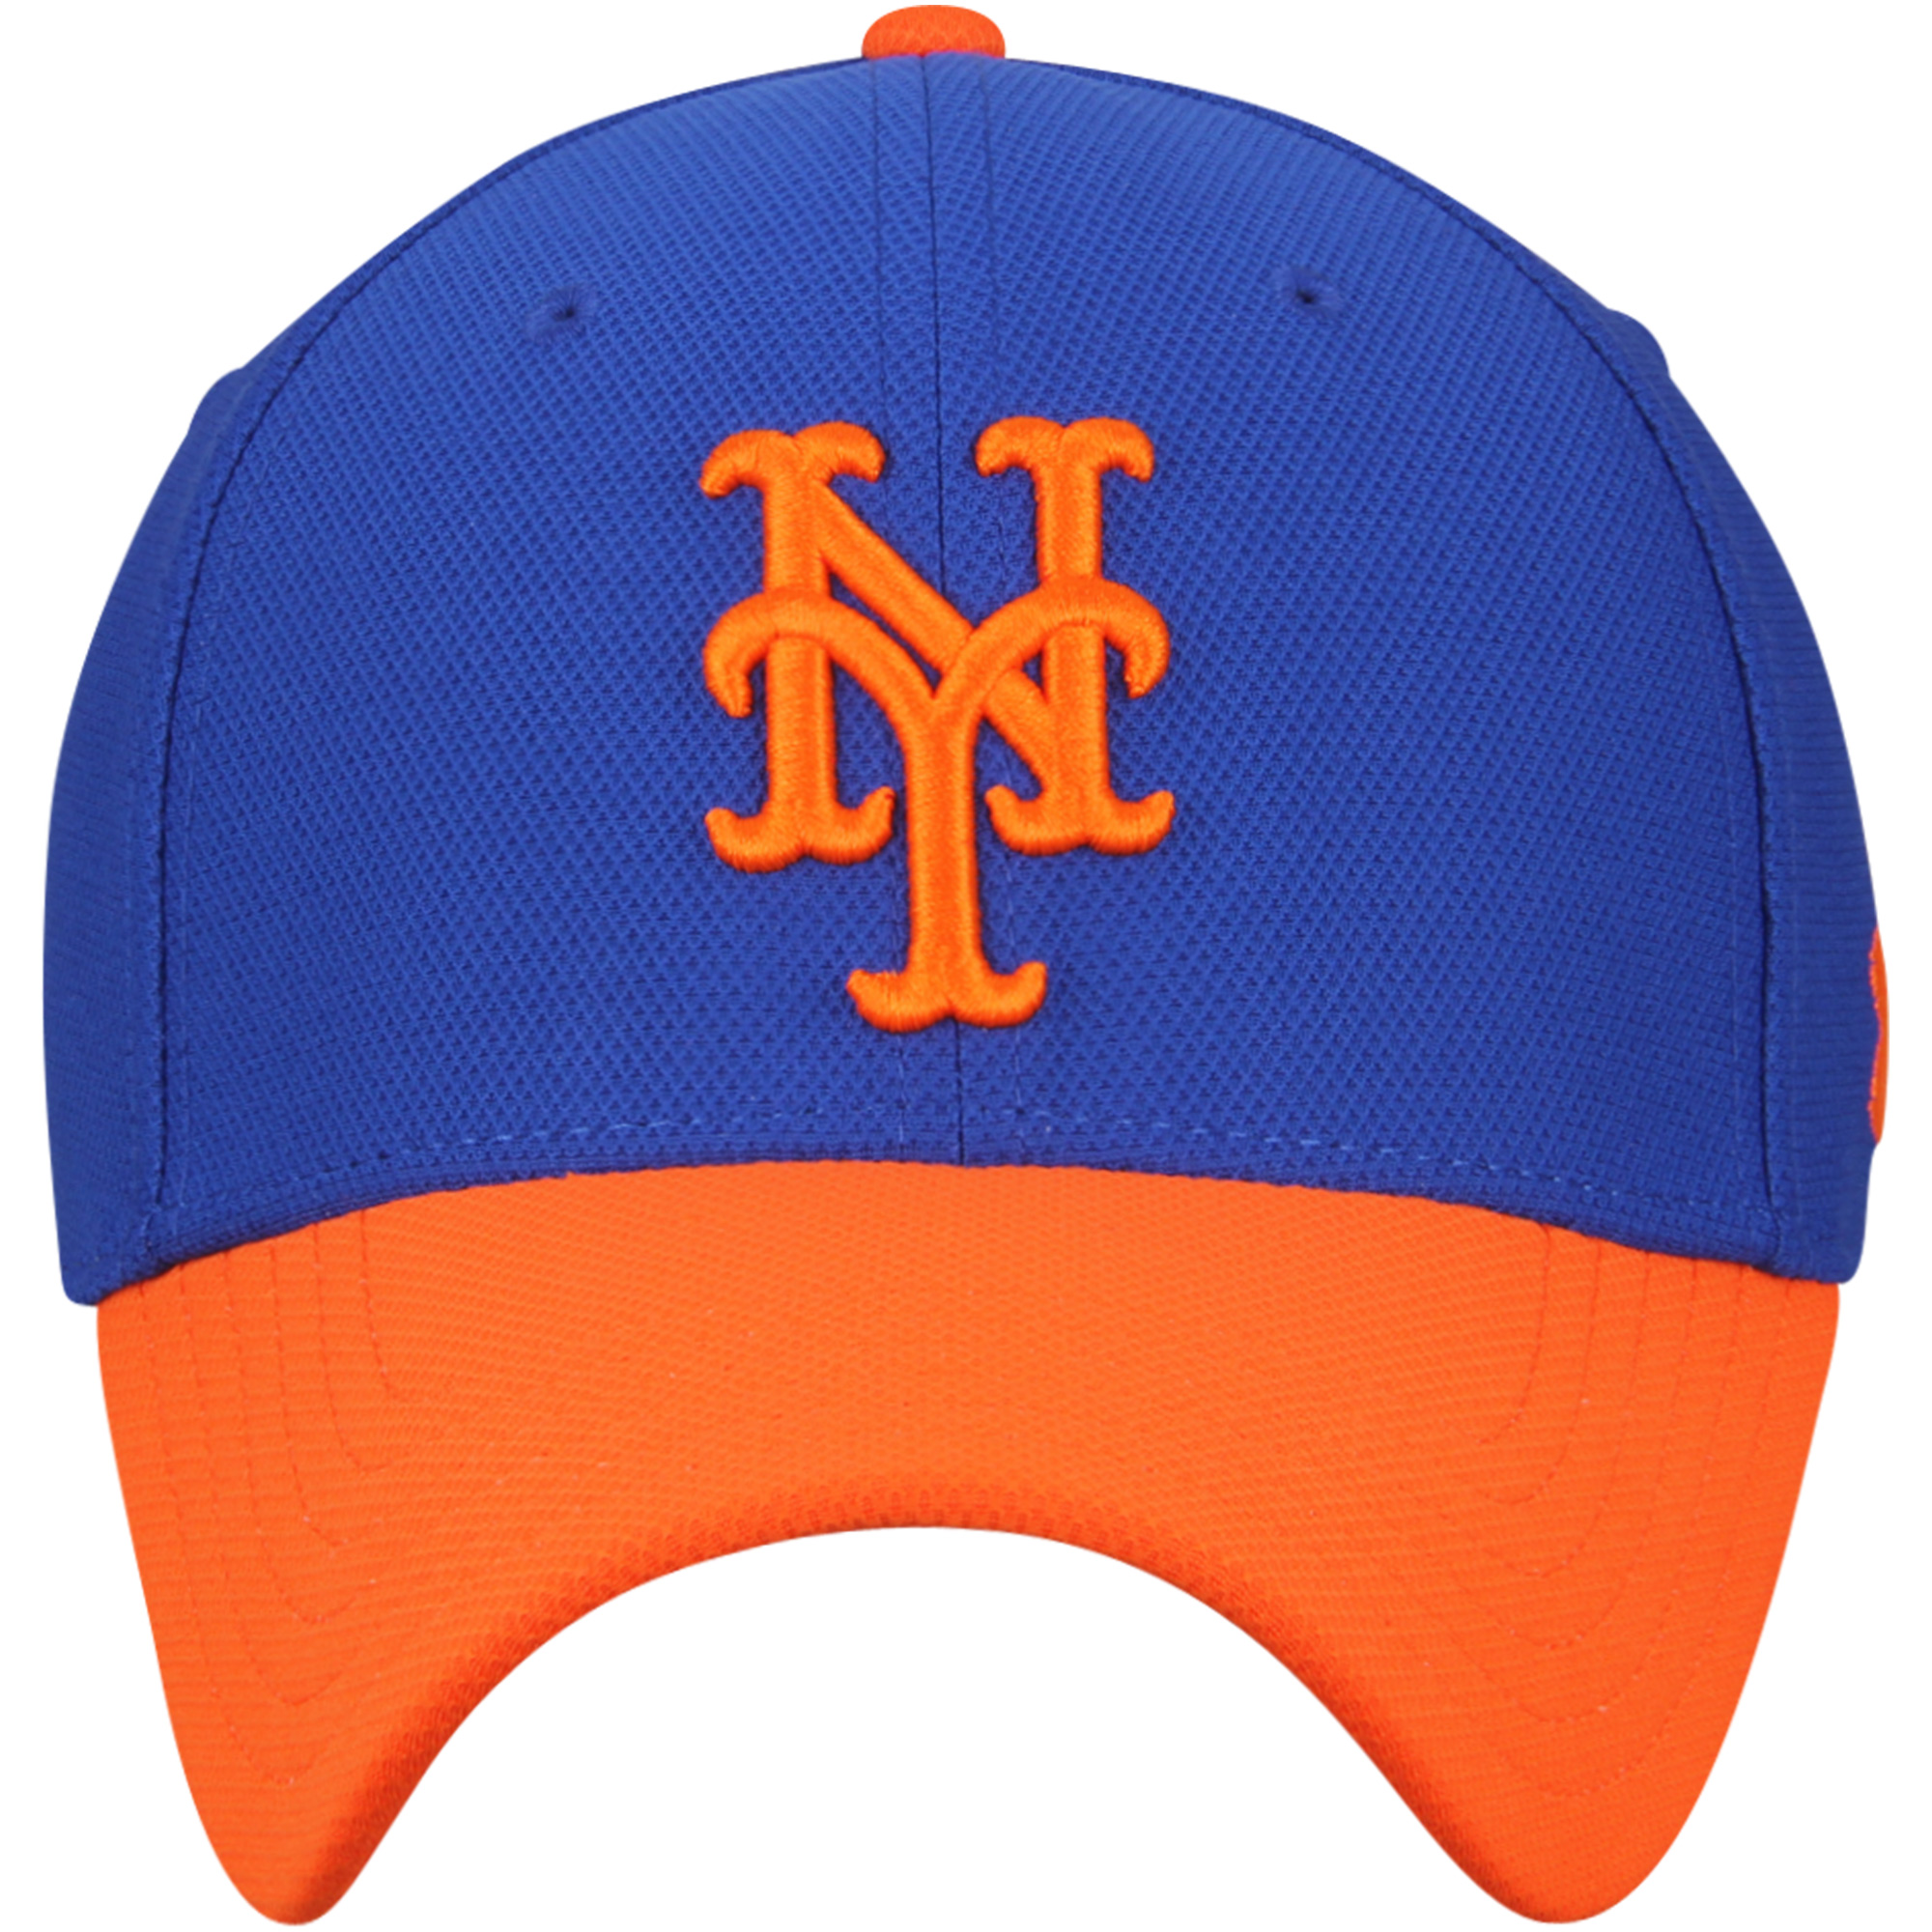 info for ee724 96f1e ... switzerland new york mets under armour blitzing performance adjustable  hat royal orange osfa walmart 46b8a 15aae